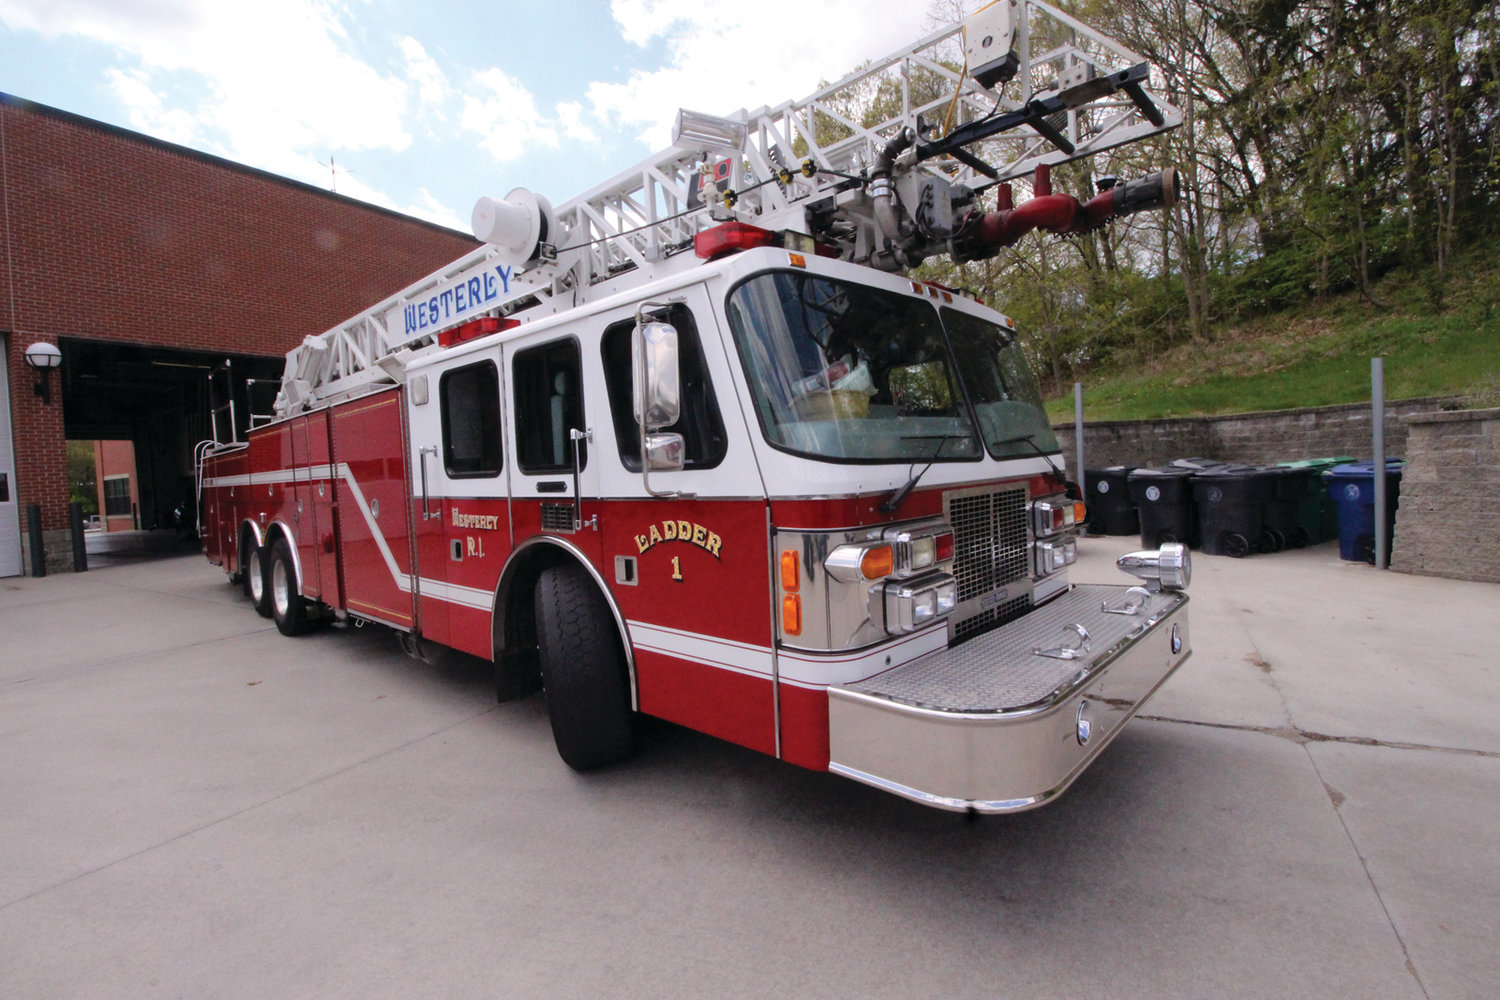 New chief delivers with $25K fire truck purchase | Warwick